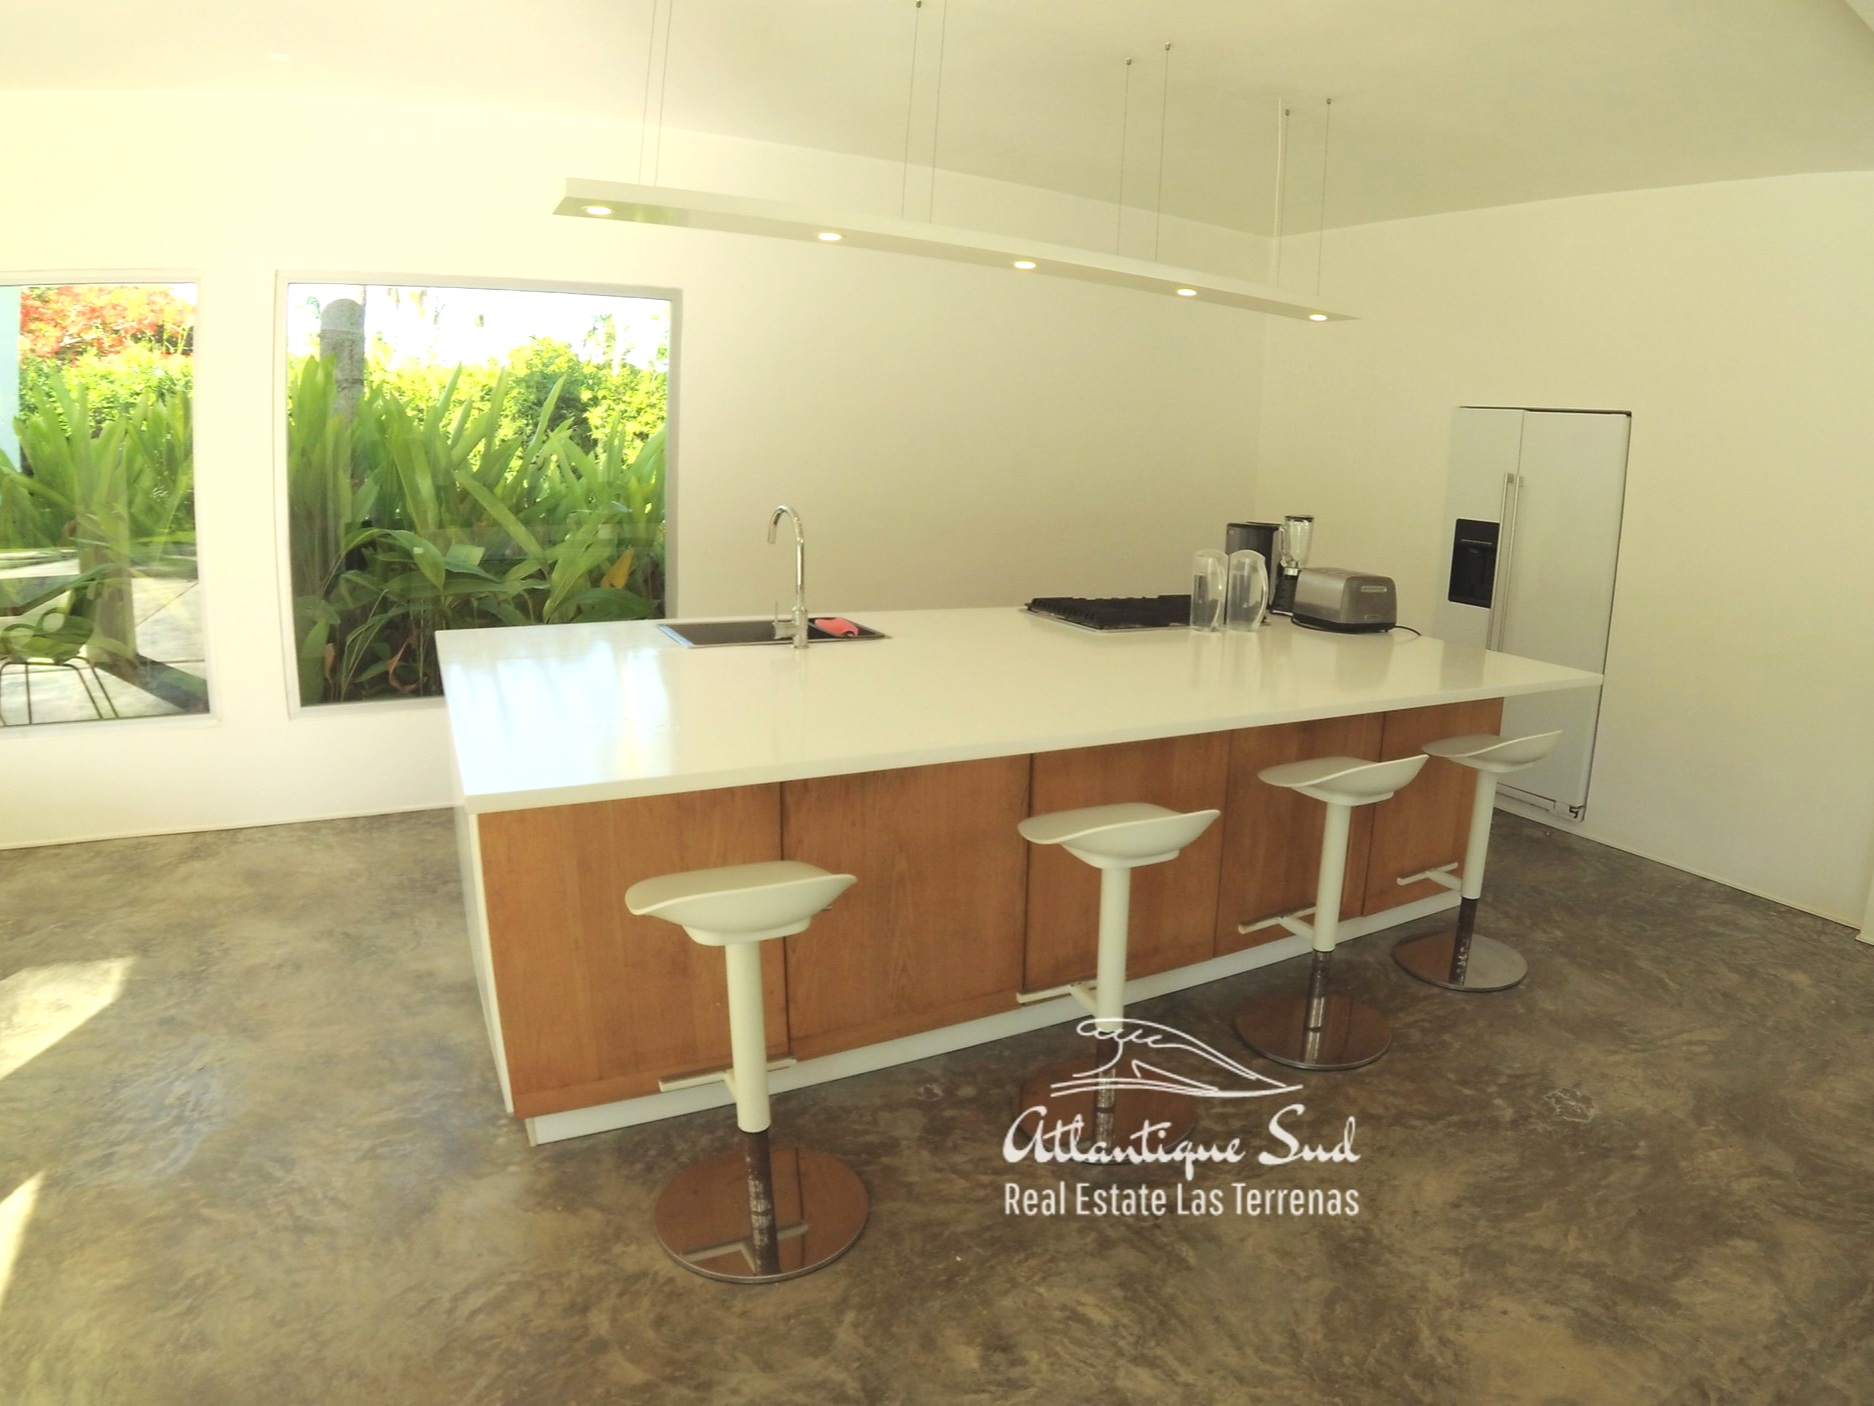 Kitchen villa for sale Las terrenas-min.JPG